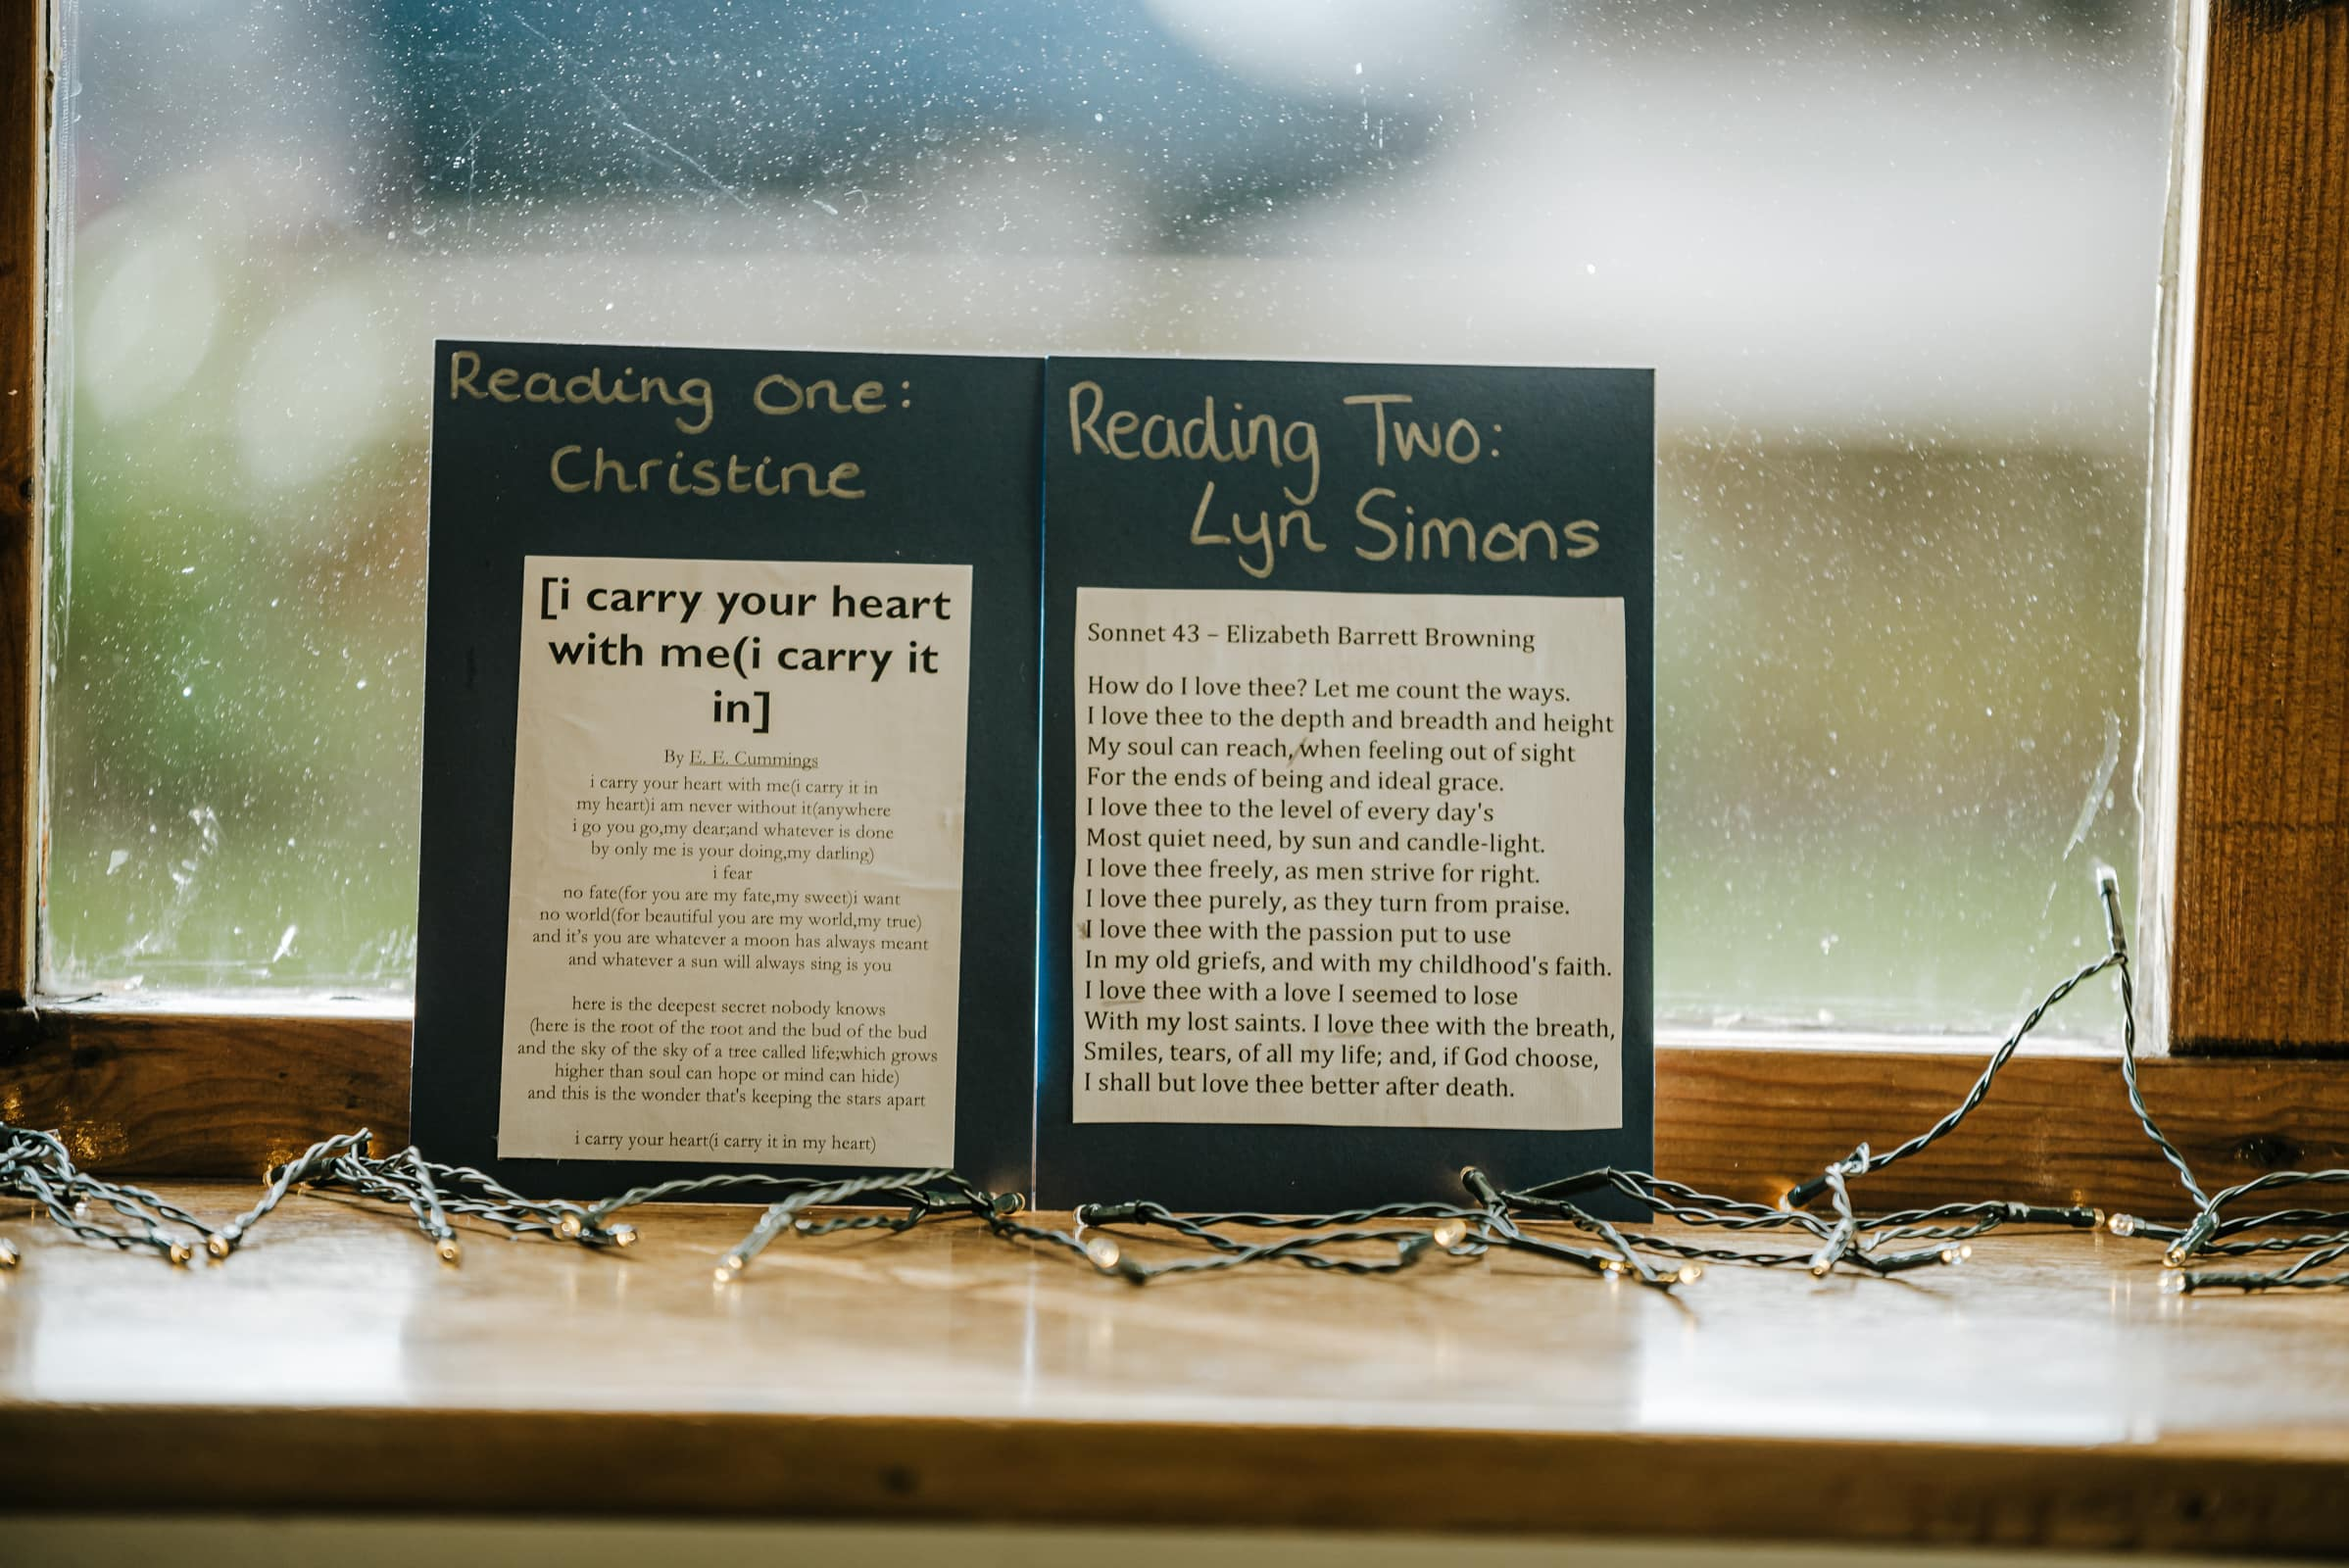 Wedding reading - i carry your heart with me and Sonnet 43 - near the fairy lights, at a window sill Roshni photography The Milling Barn, Bluntswood Hall, Throcking wedding photographer